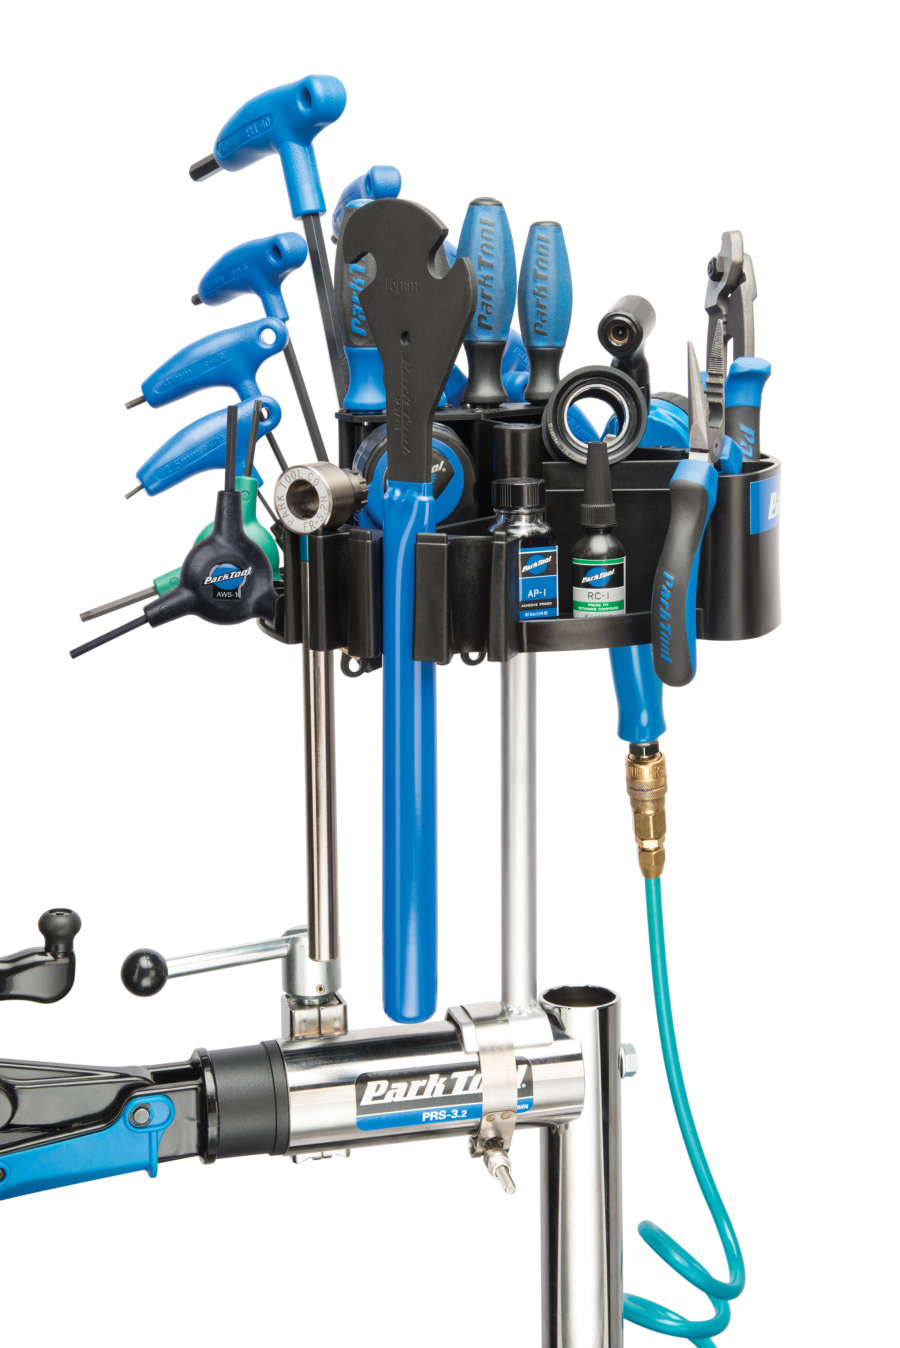 The Park Tool TH-4 Tool Kaddie with Stand Mount mounted on stand filled with tools, enlarged